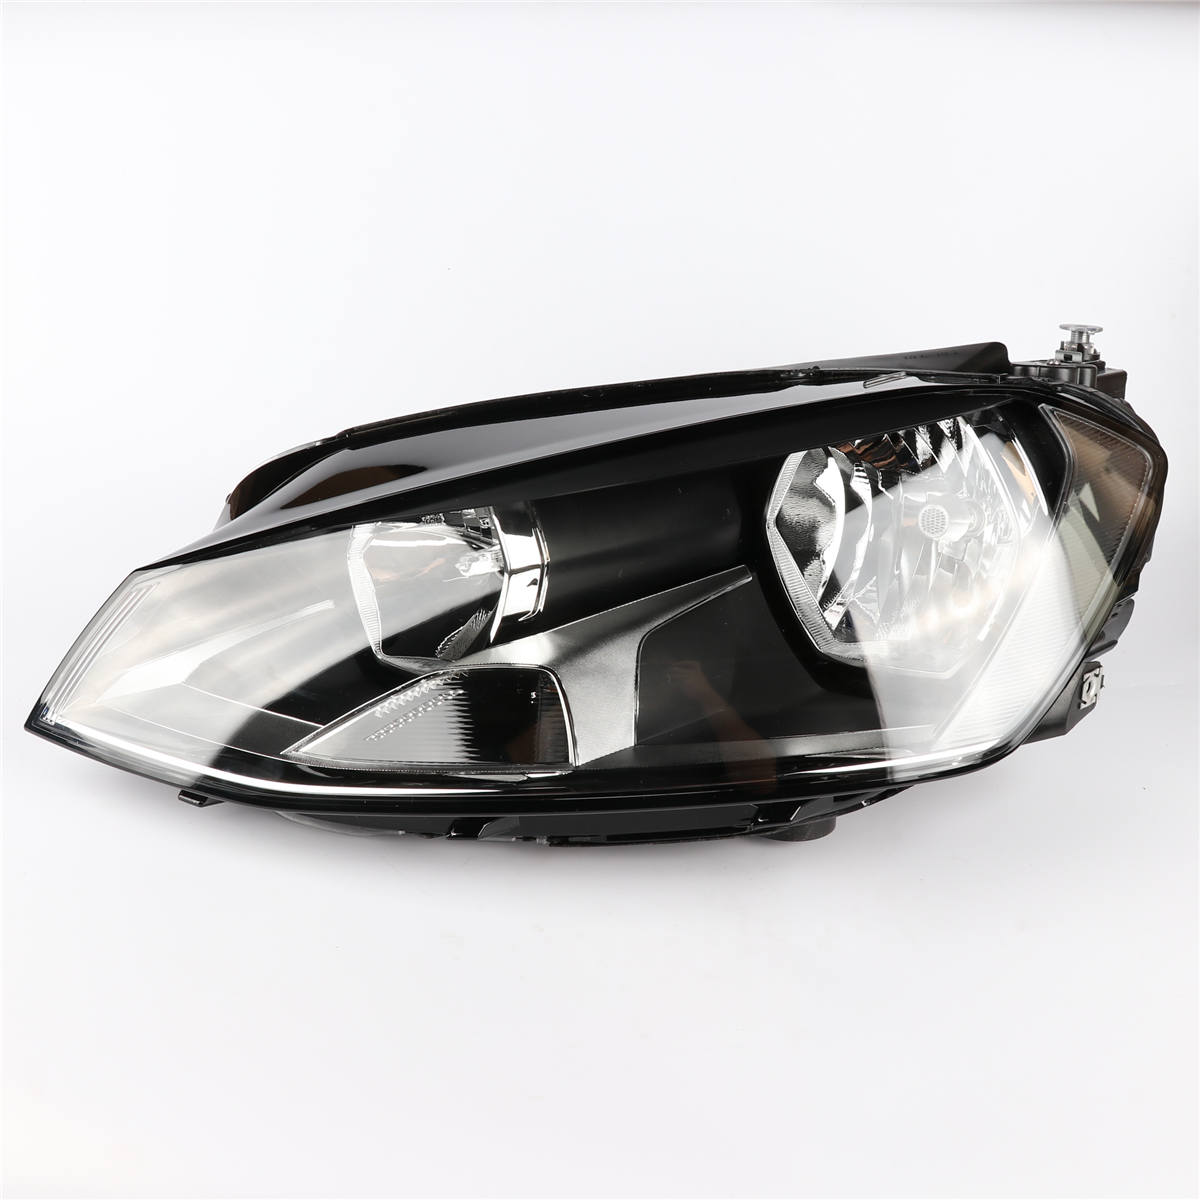 OEM 1Pcs High Quality Front Right Side Headlight Head Light Lamp Assembly For VW Golf MK7 L5GG 941 006 A high quality 1 pair right